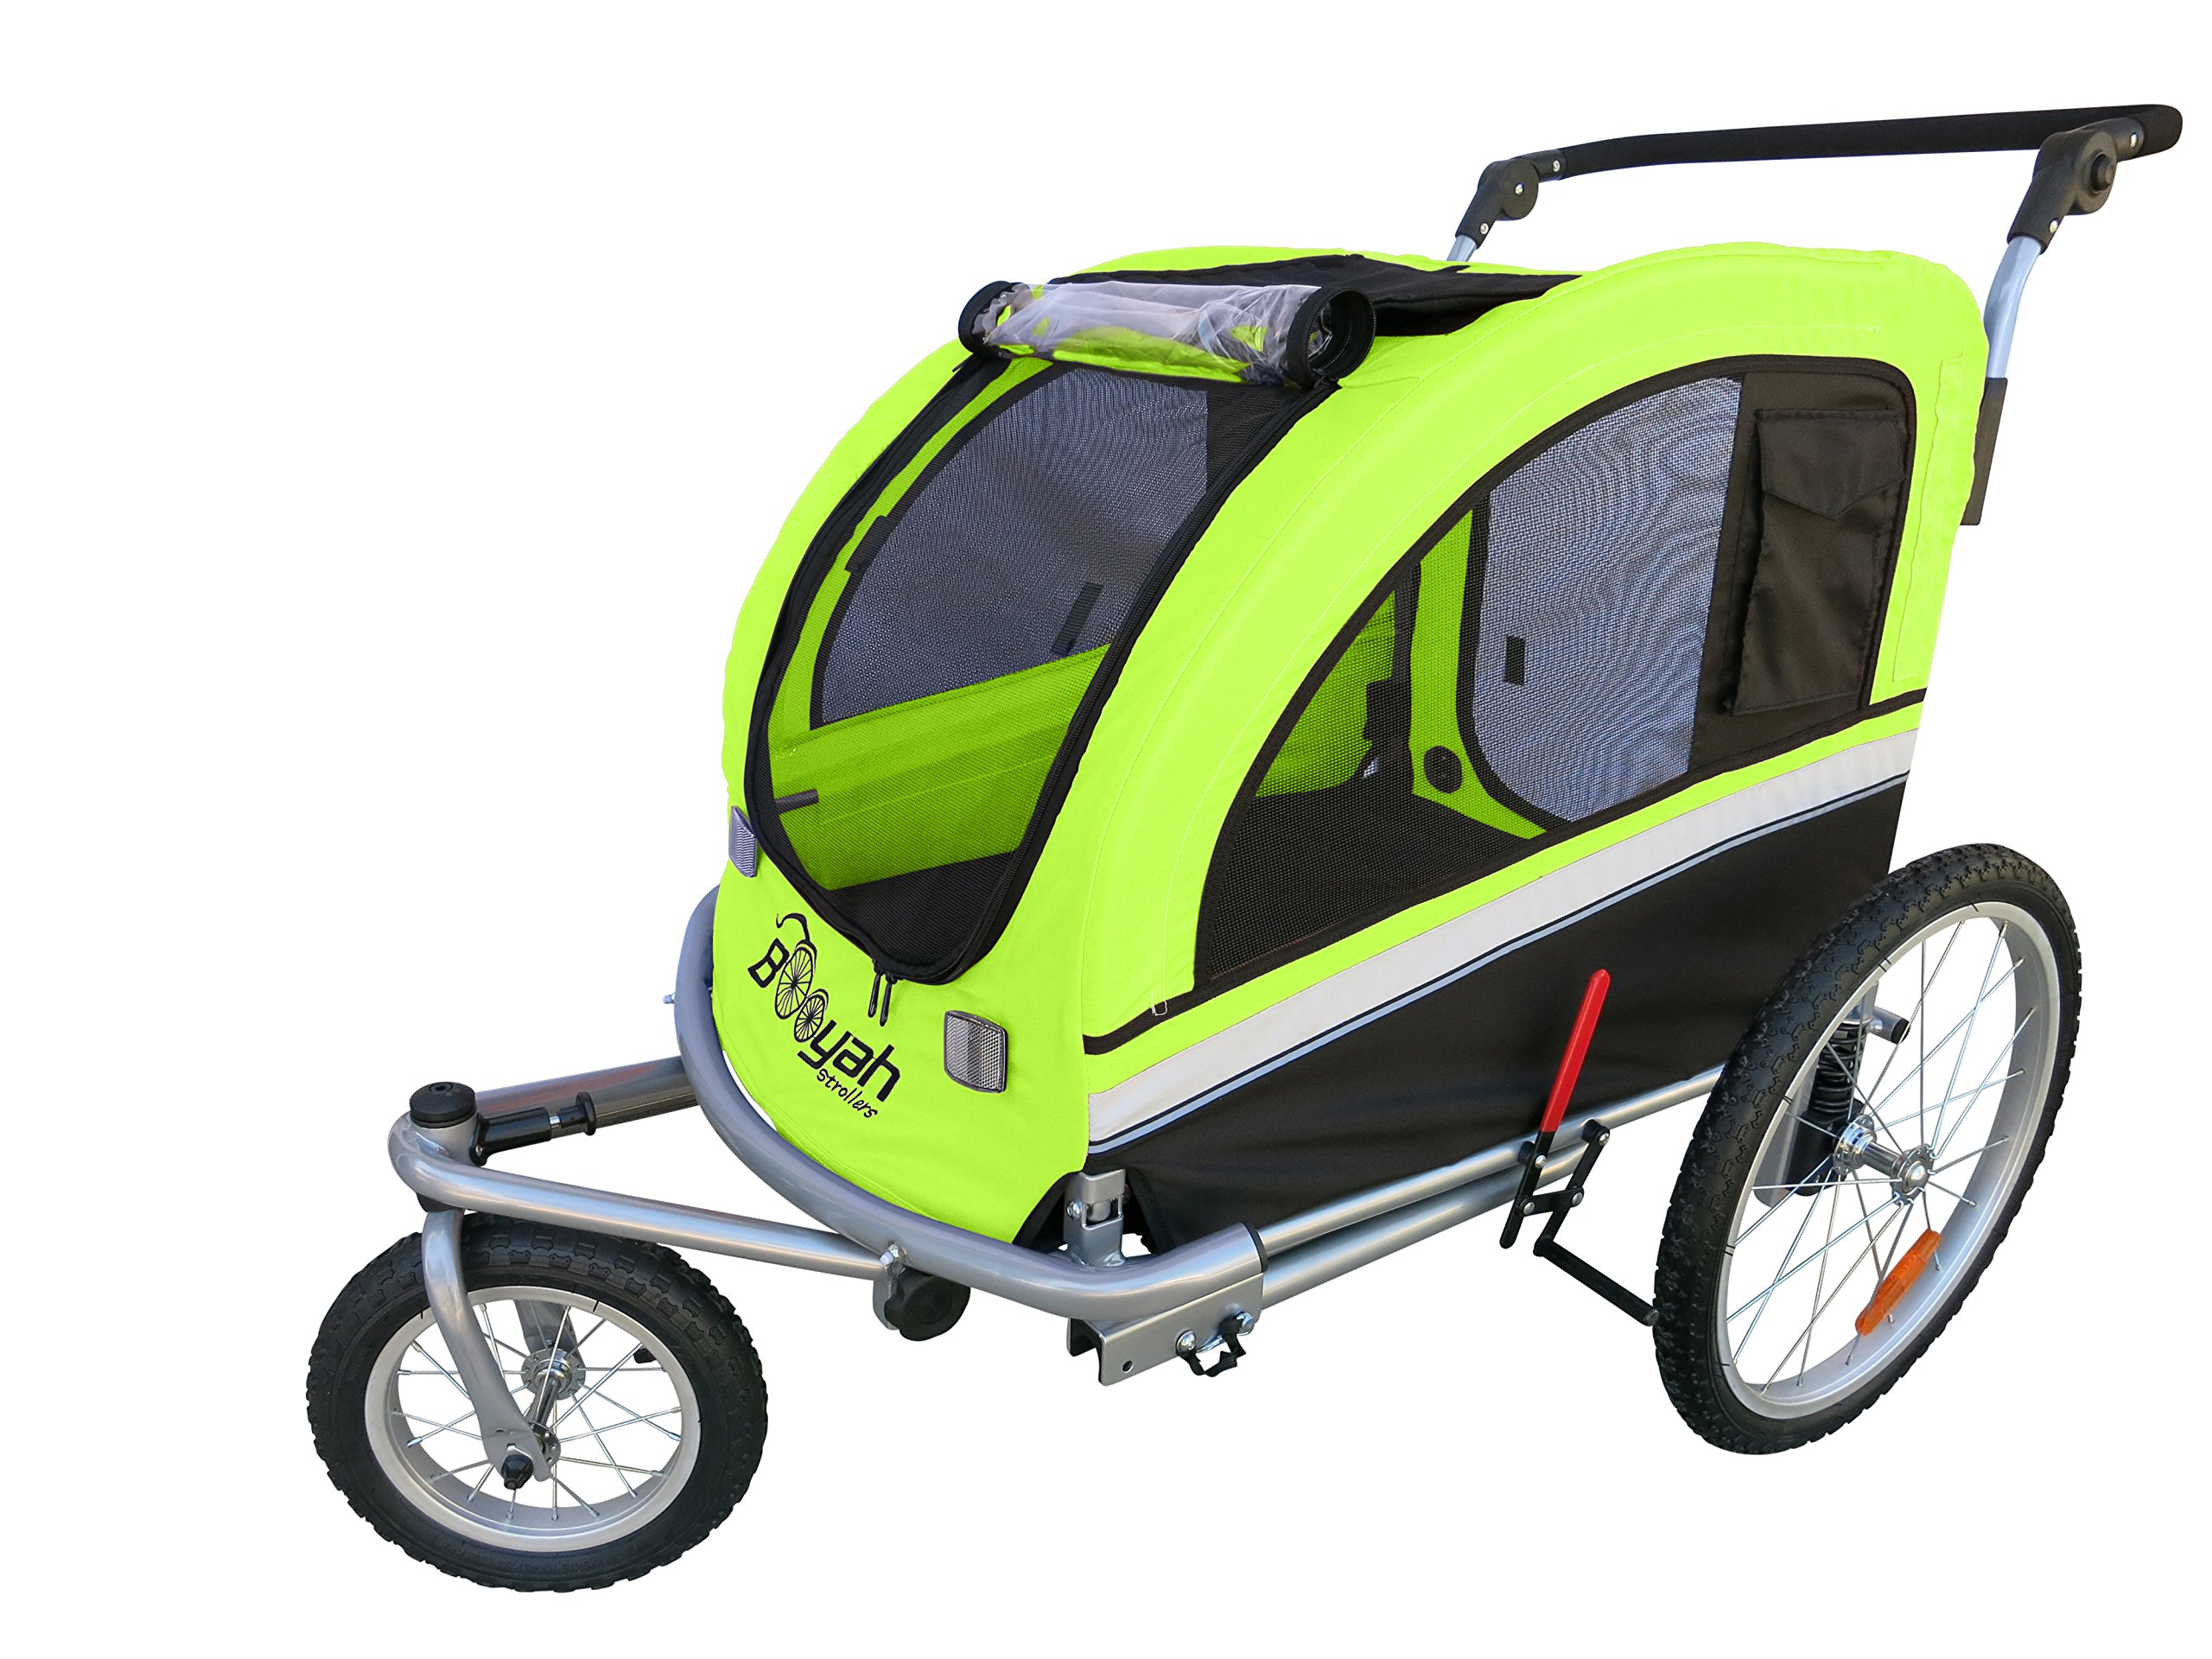 Booyah Large Pet Bike Trailer Dog Stroller & Jogger with Shocks MB - Green by Booyah Strollers